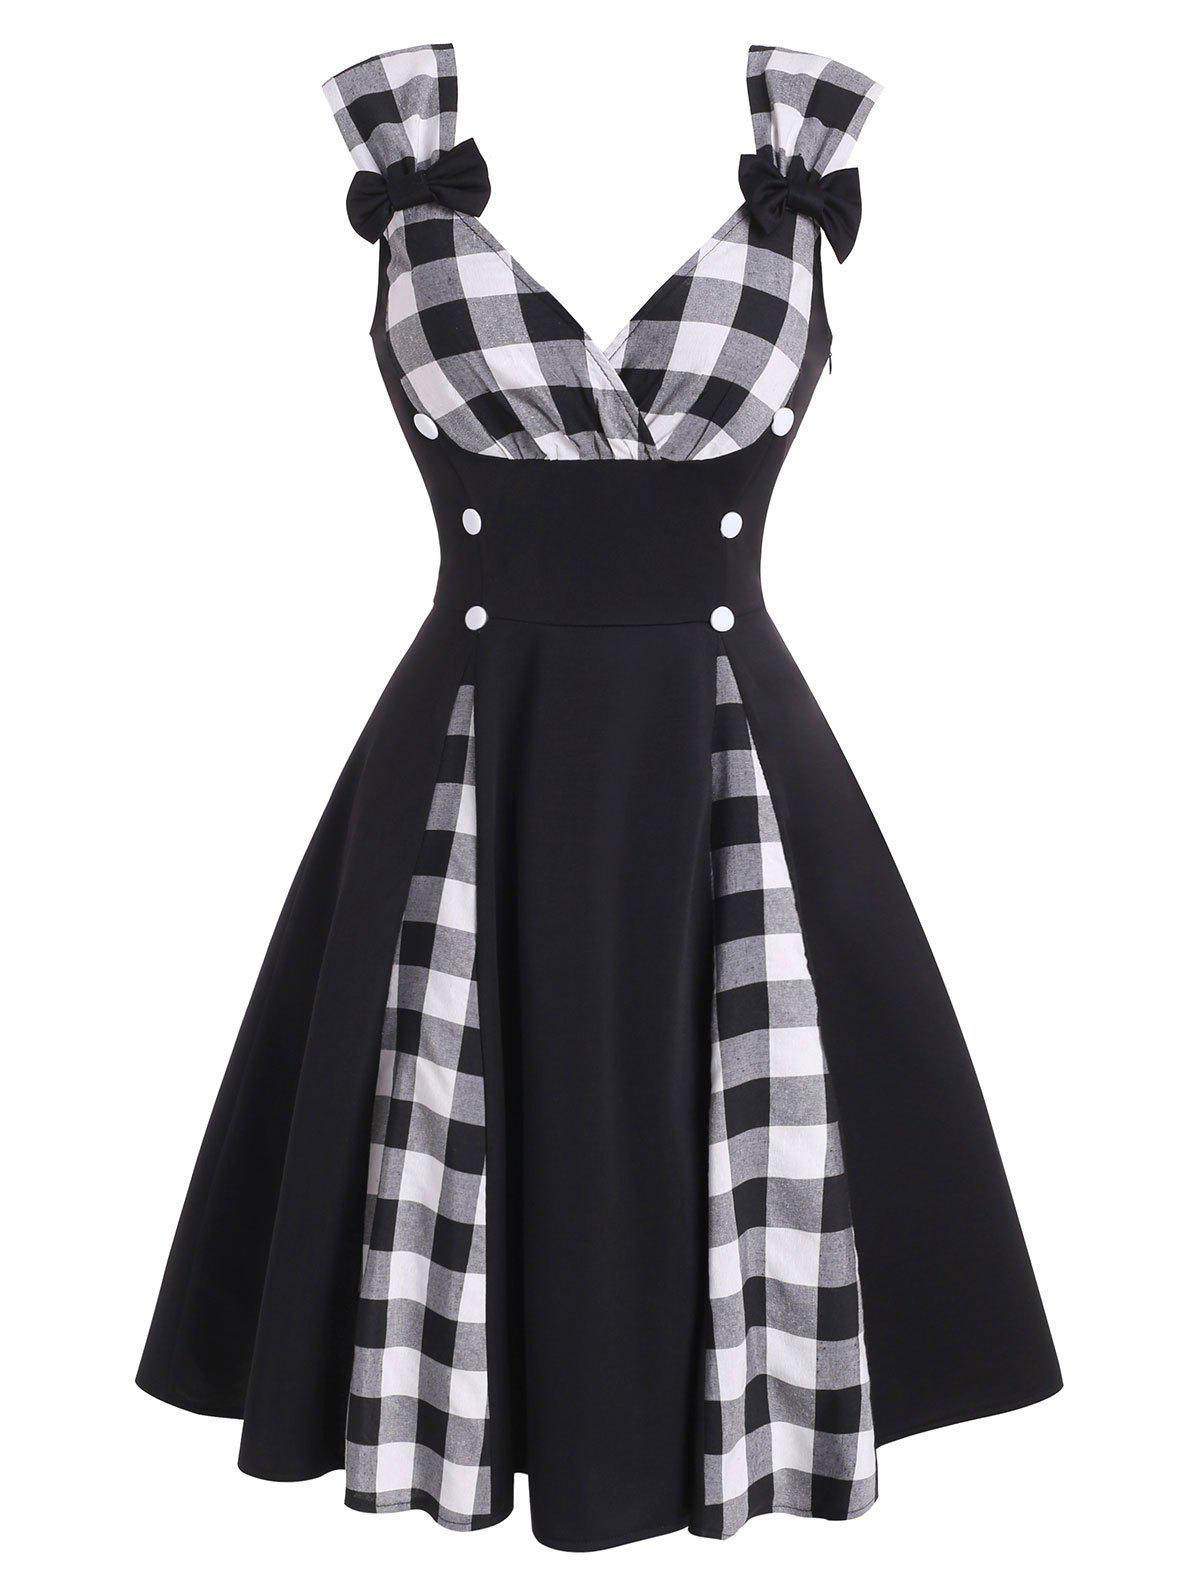 Shops Plaid Panel Bowknot Button Embellished Dress